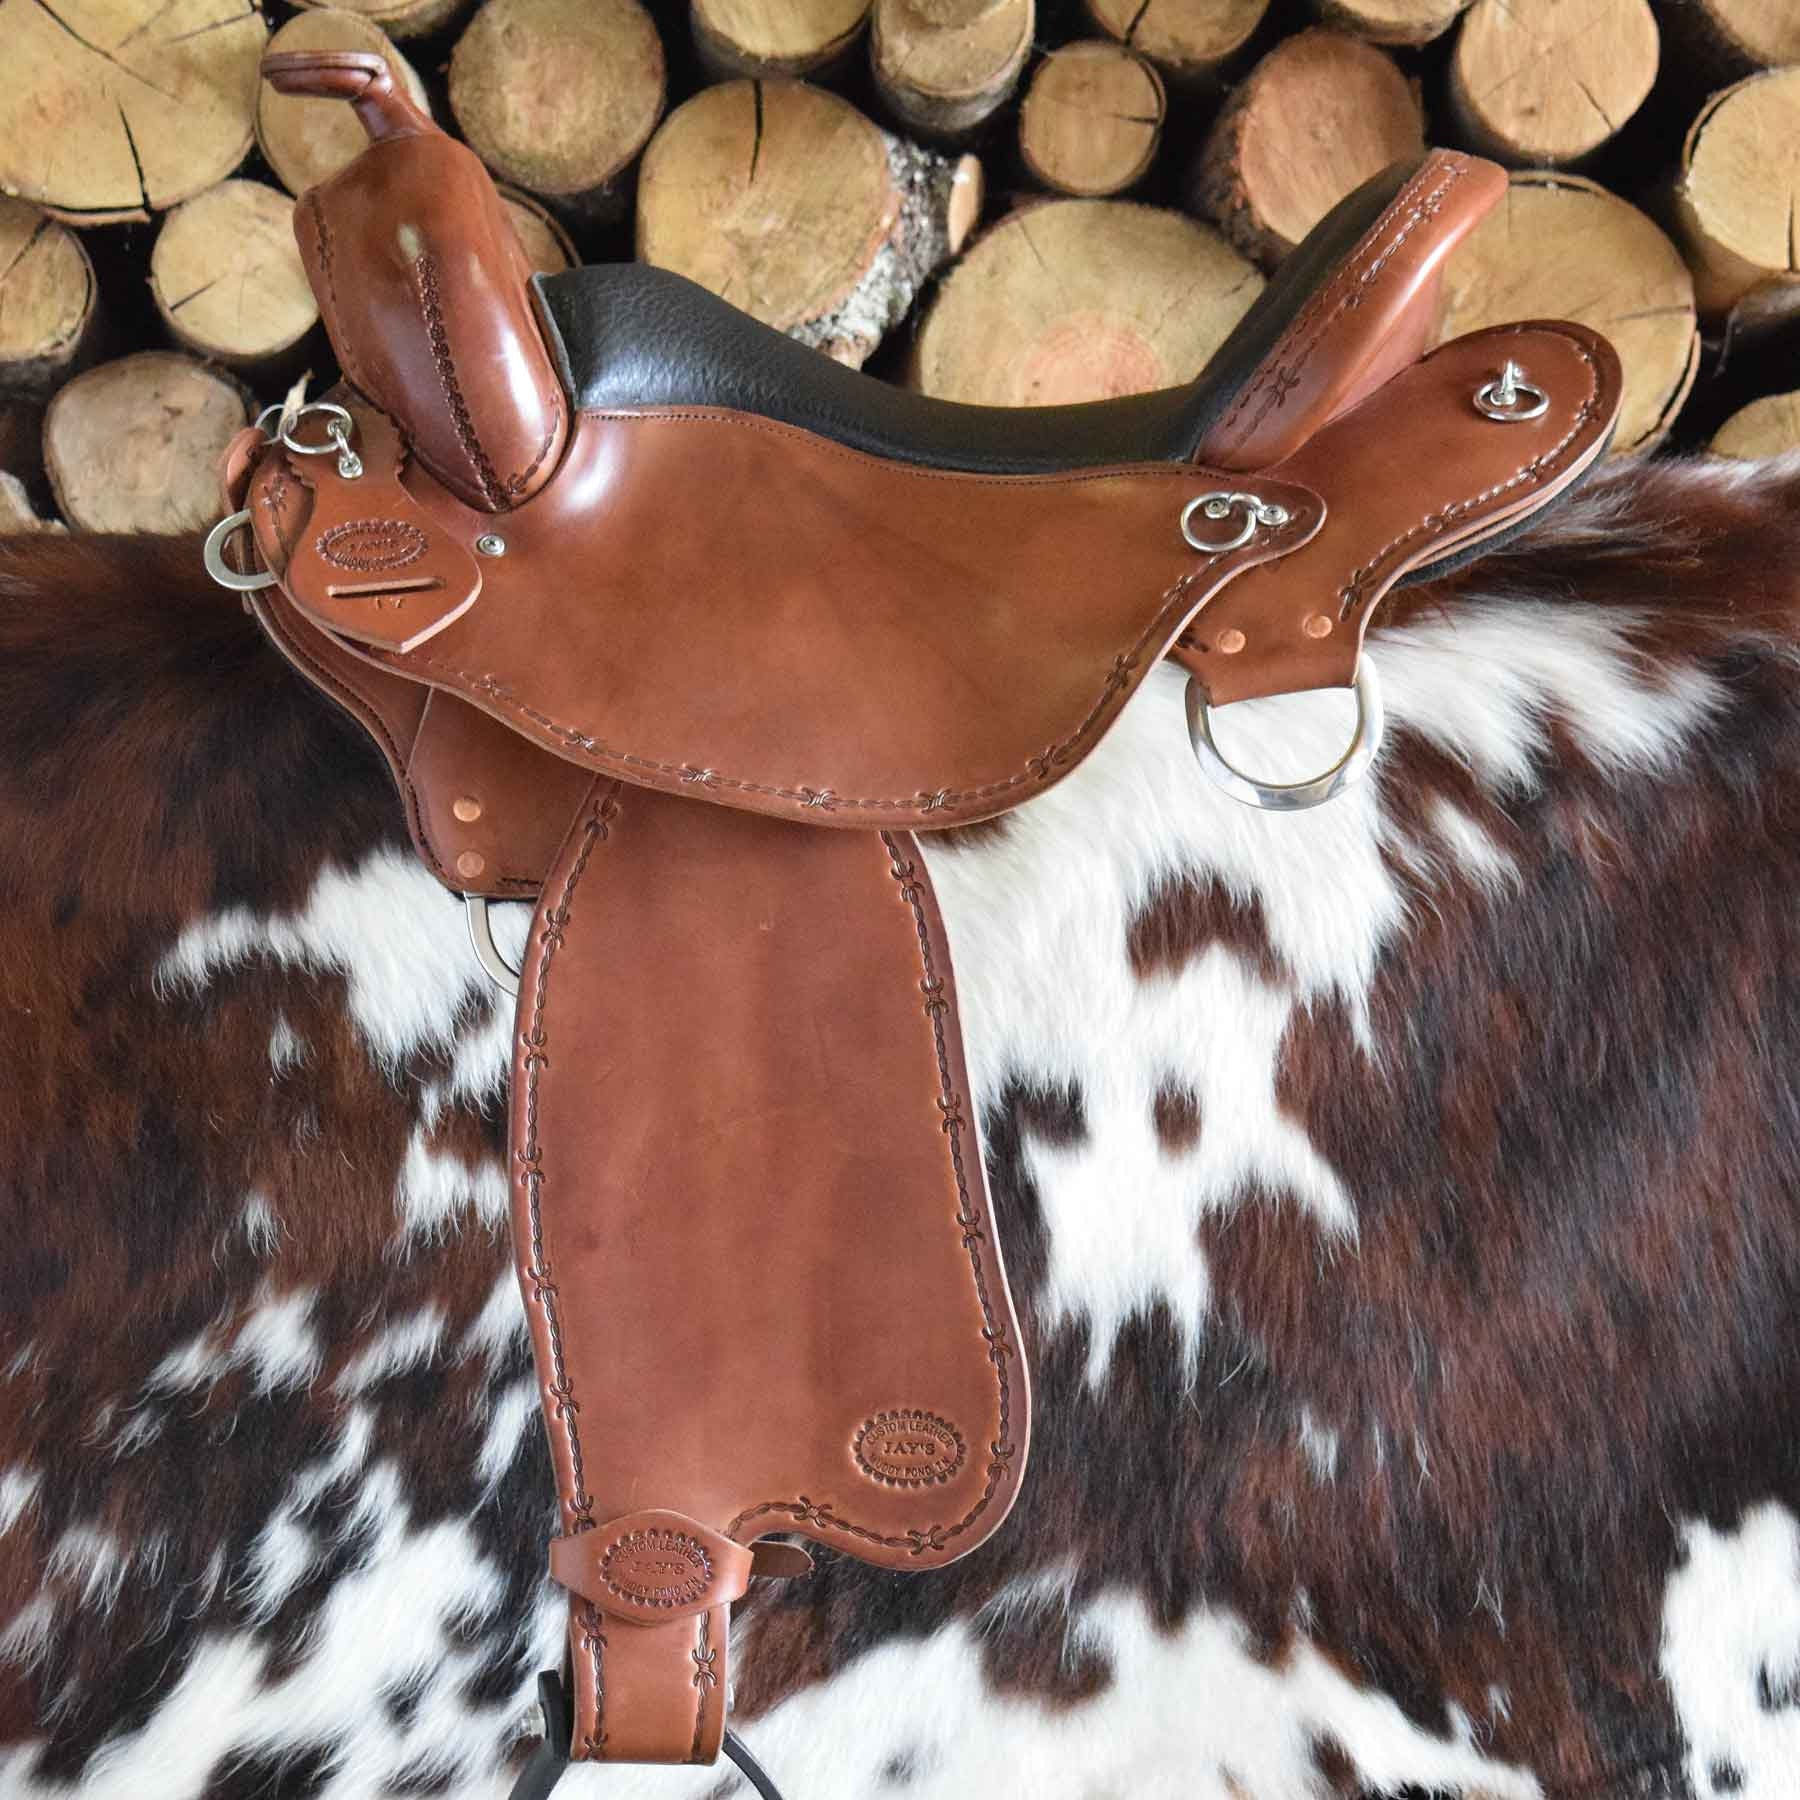 A custom leather Trail Lite /Endurance Saddle by Jay's Saddles in Tennessee